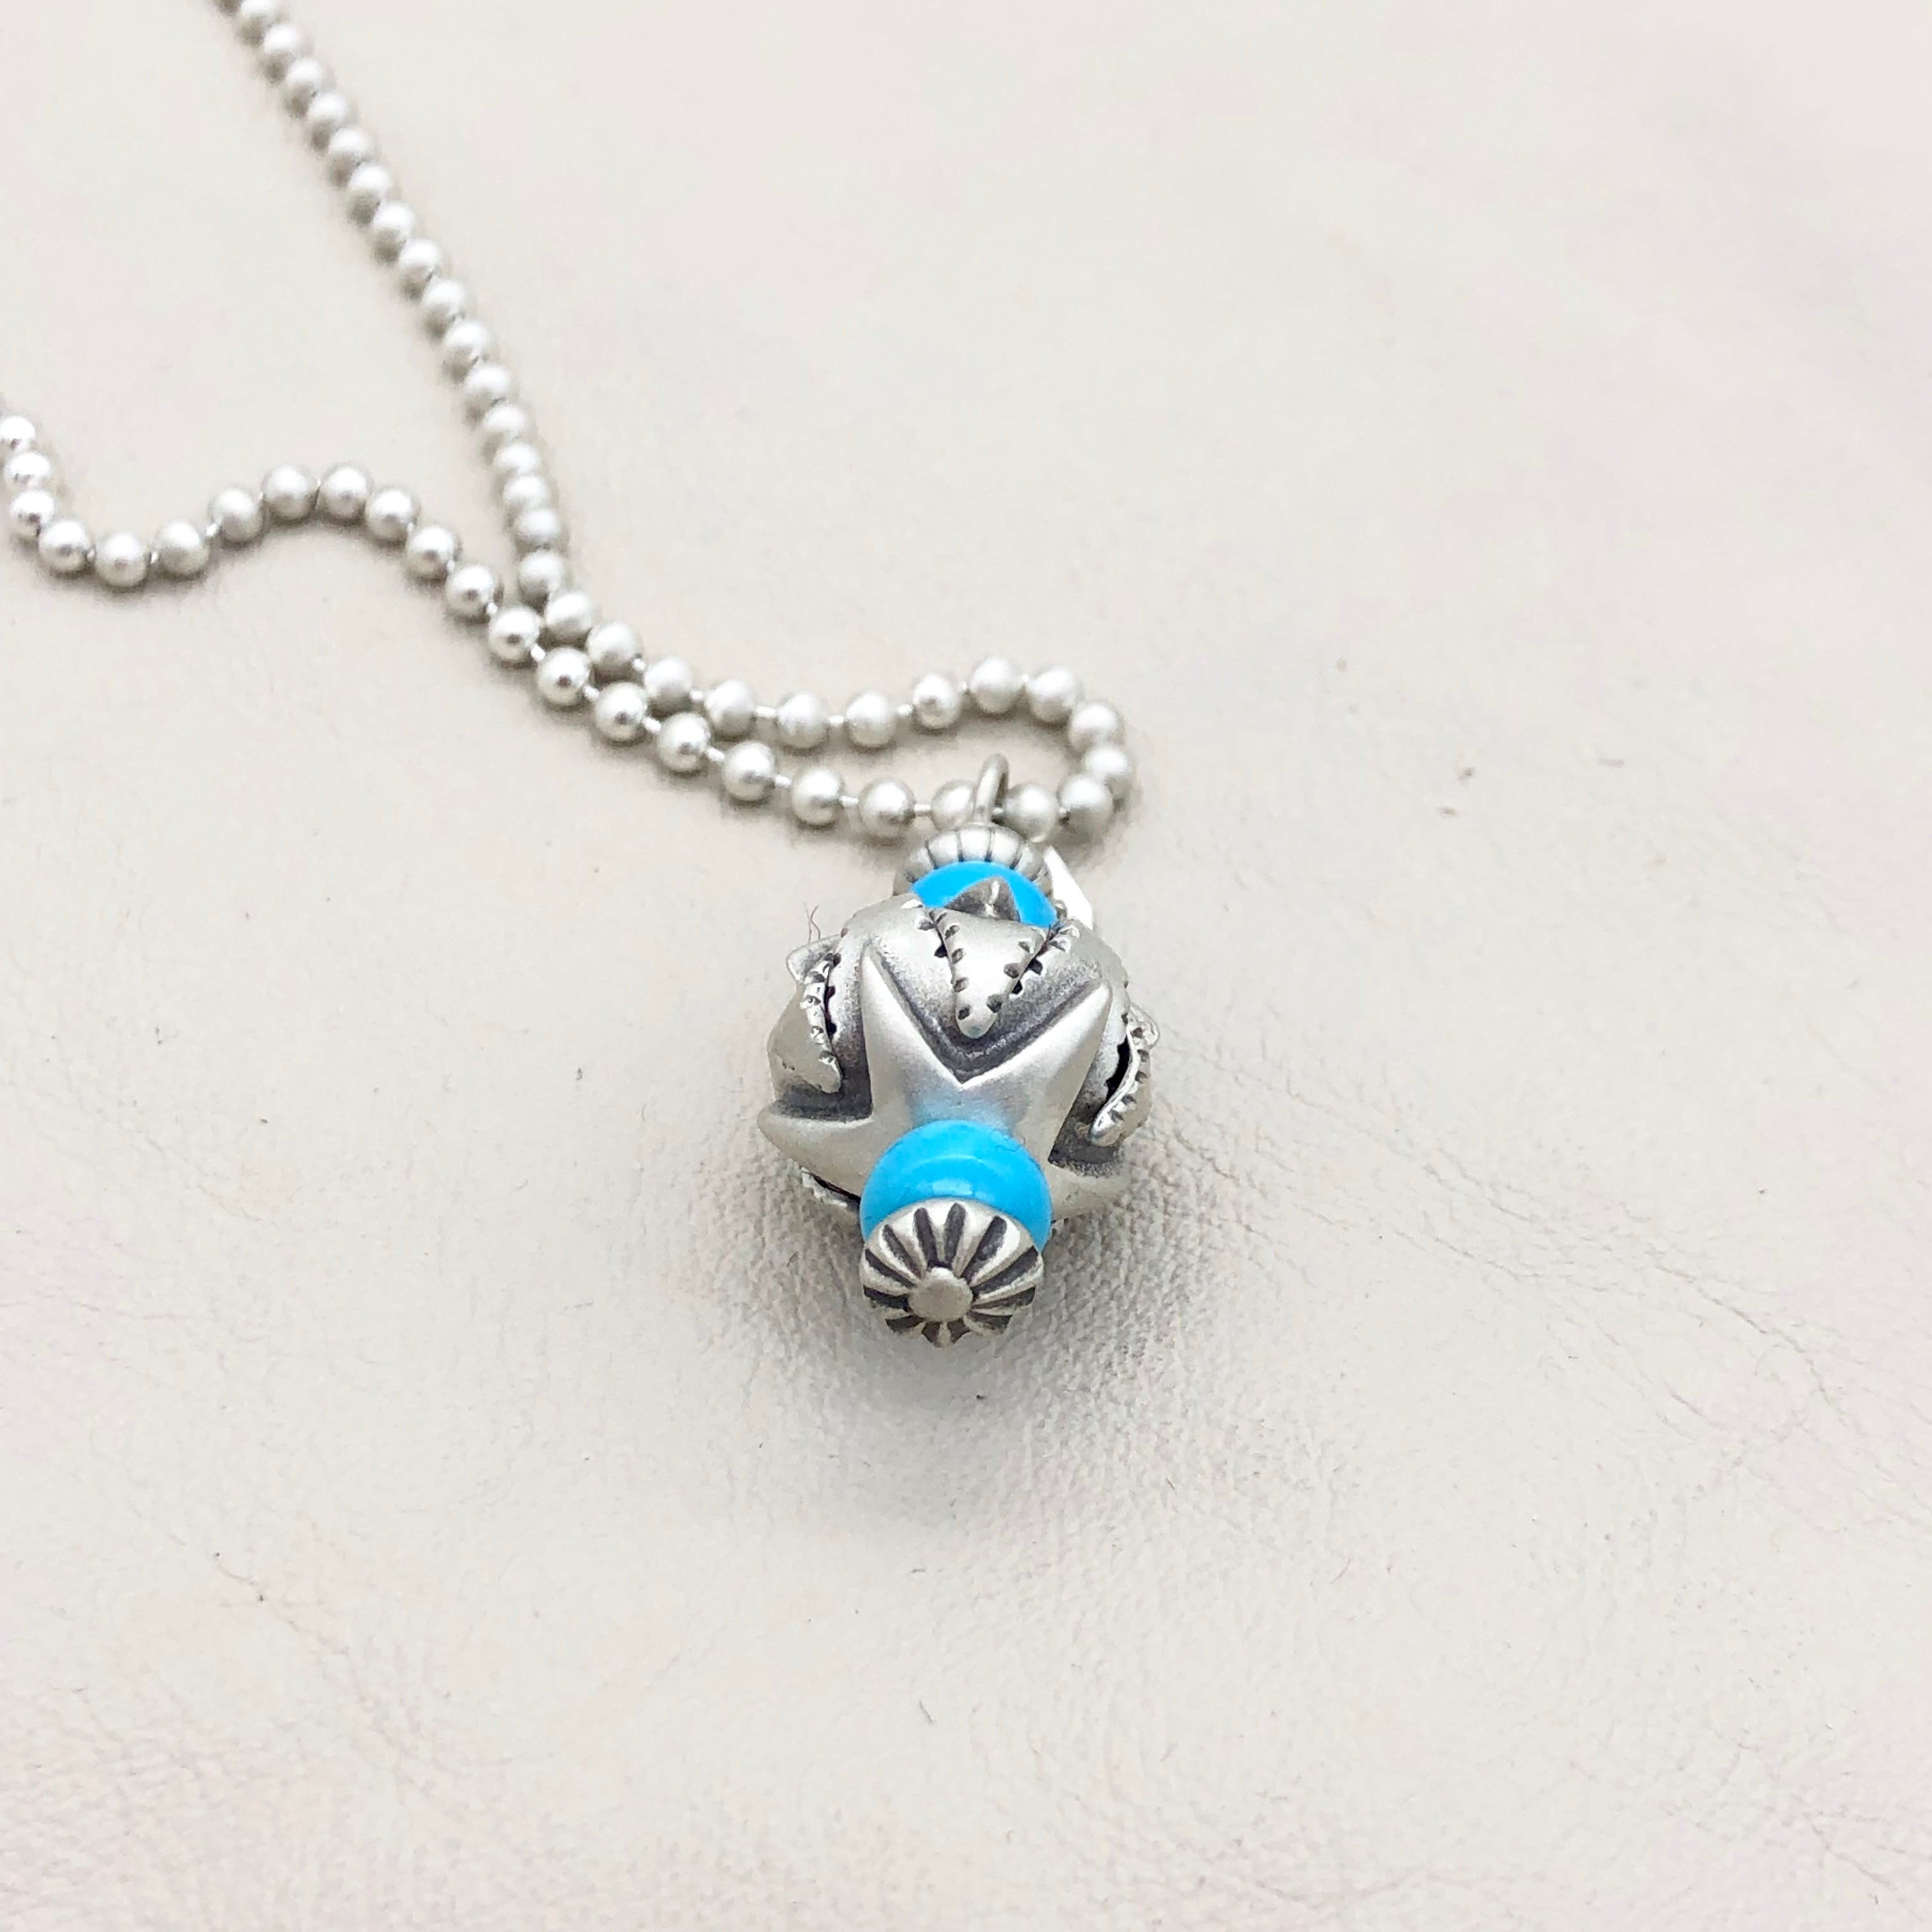 Santa Fe Pearl Sterling Silver Star Bead with Turquoise